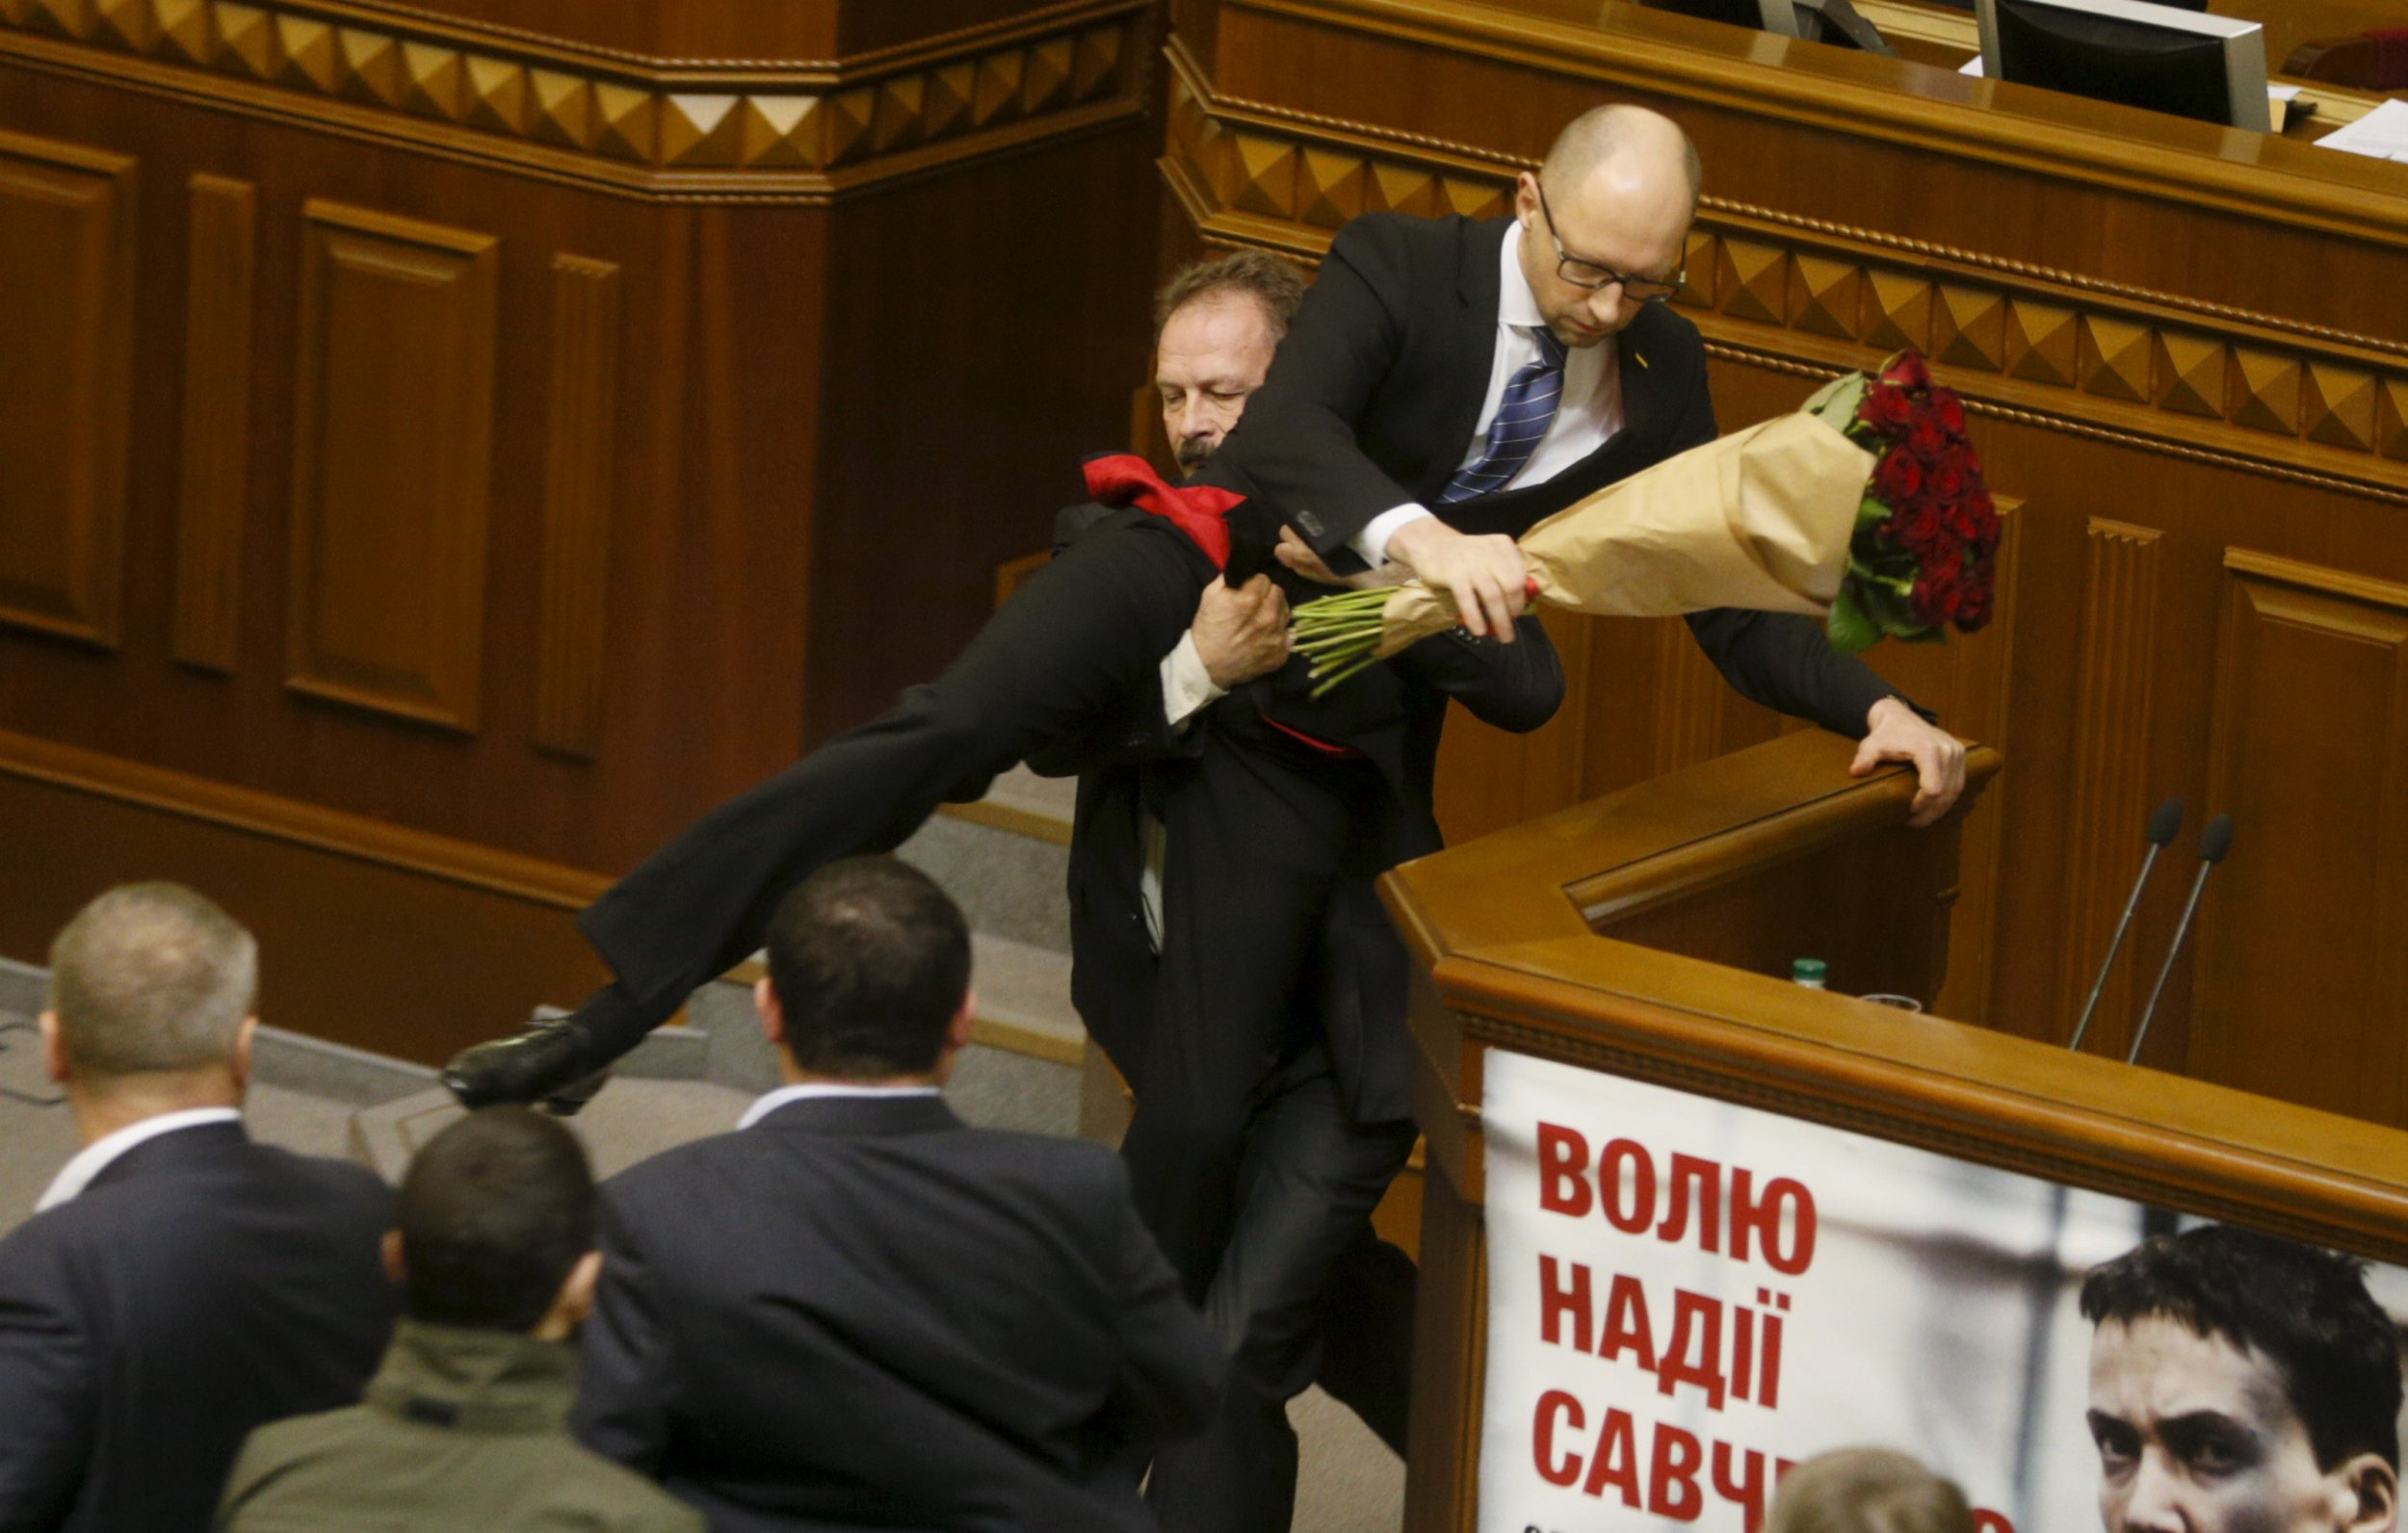 Ukraine PM Yatseniuk is pulled from the podium in parliament by MP